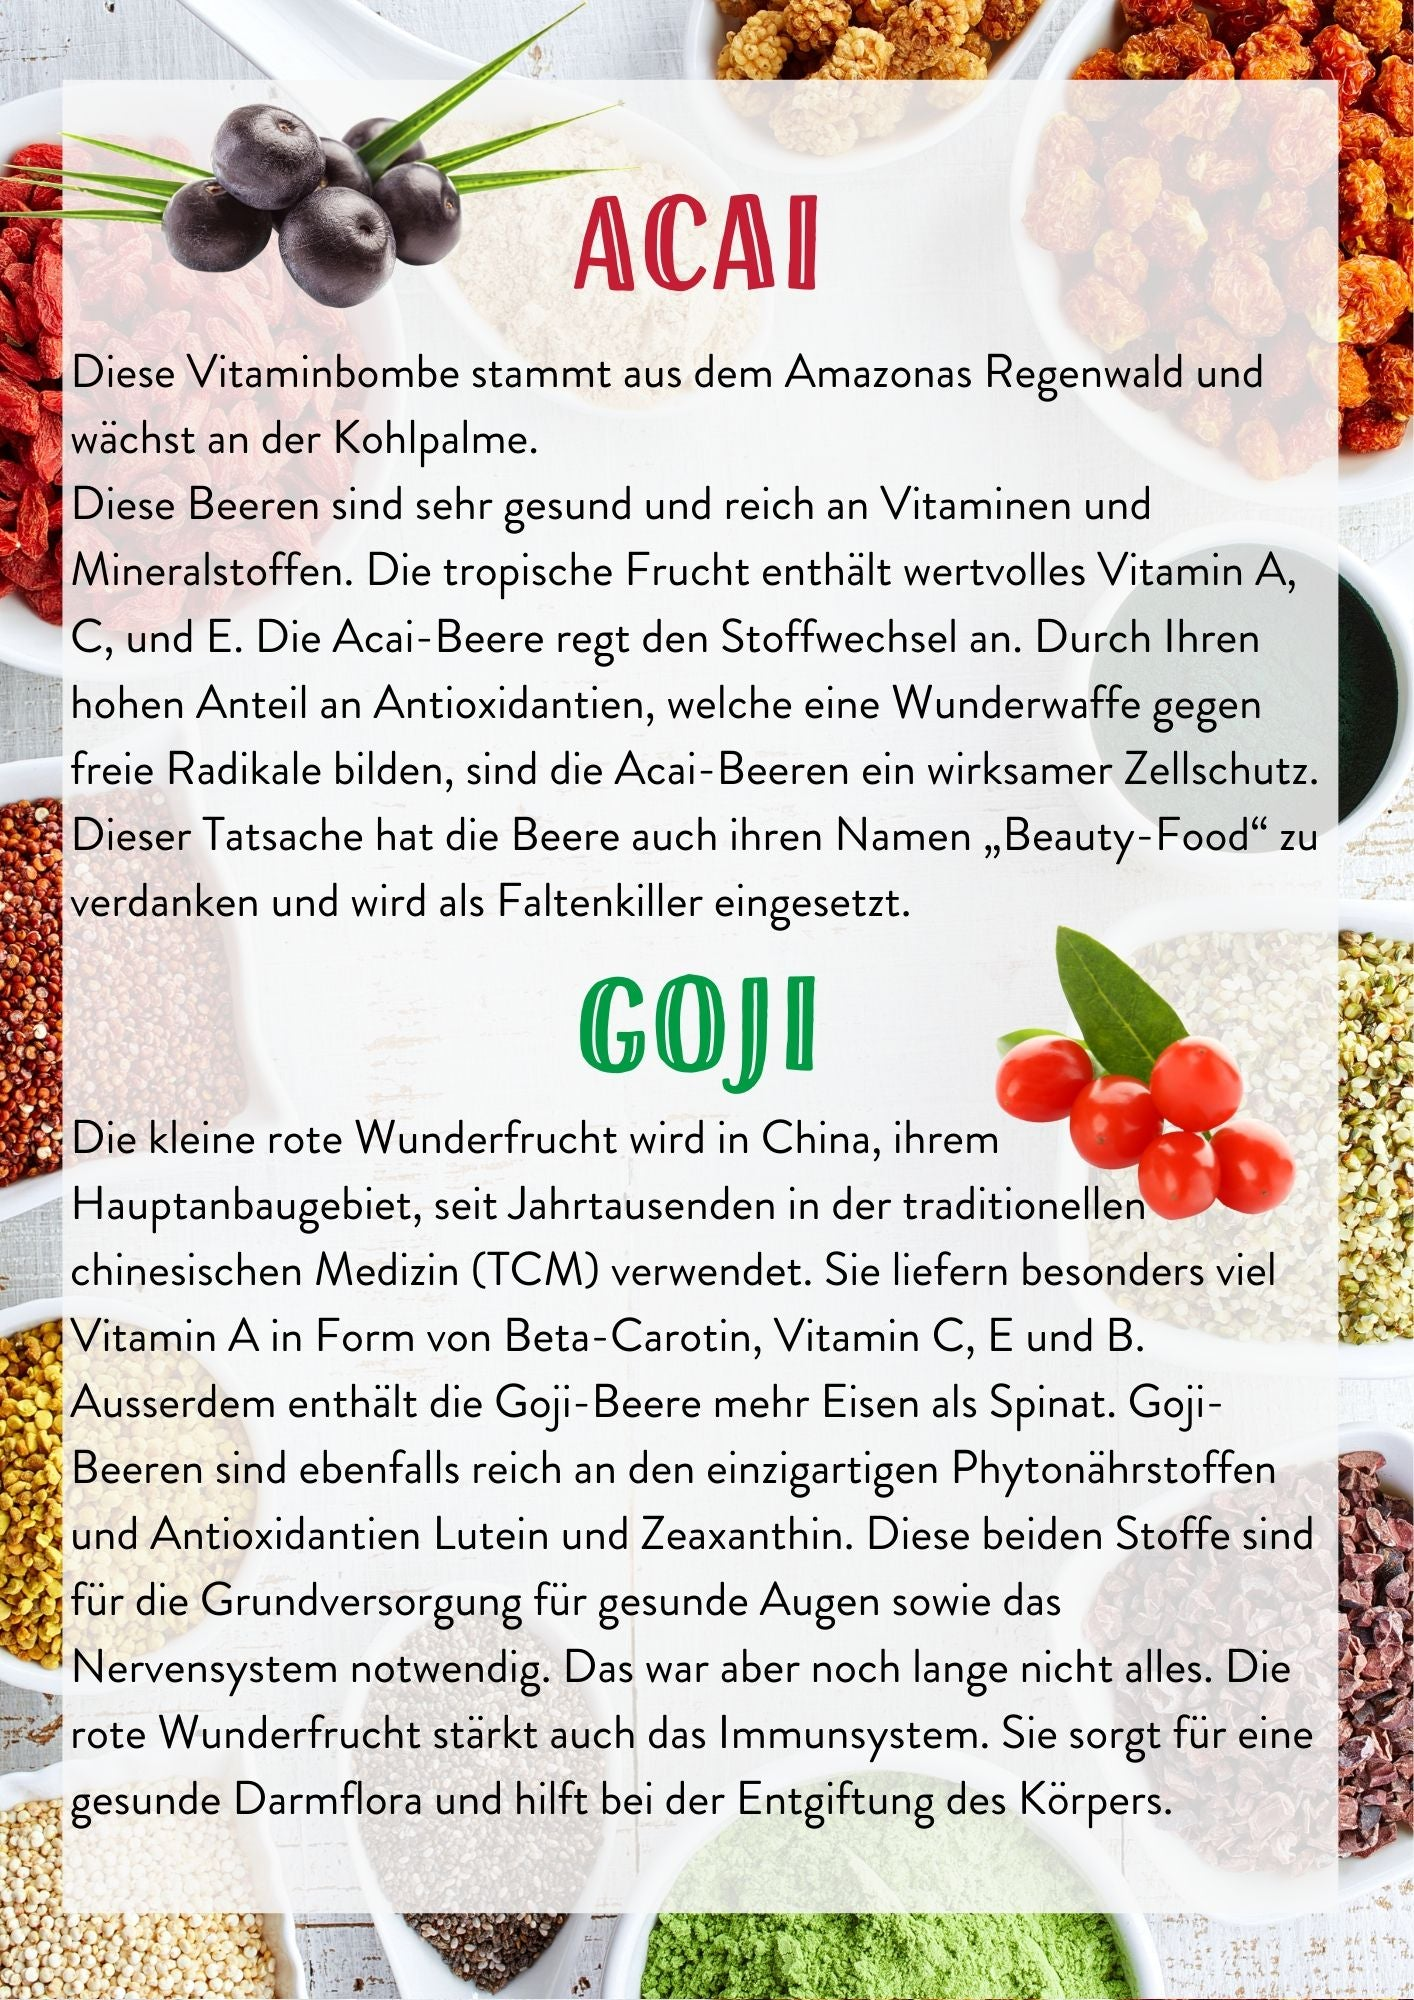 Acai Goji Superfoods